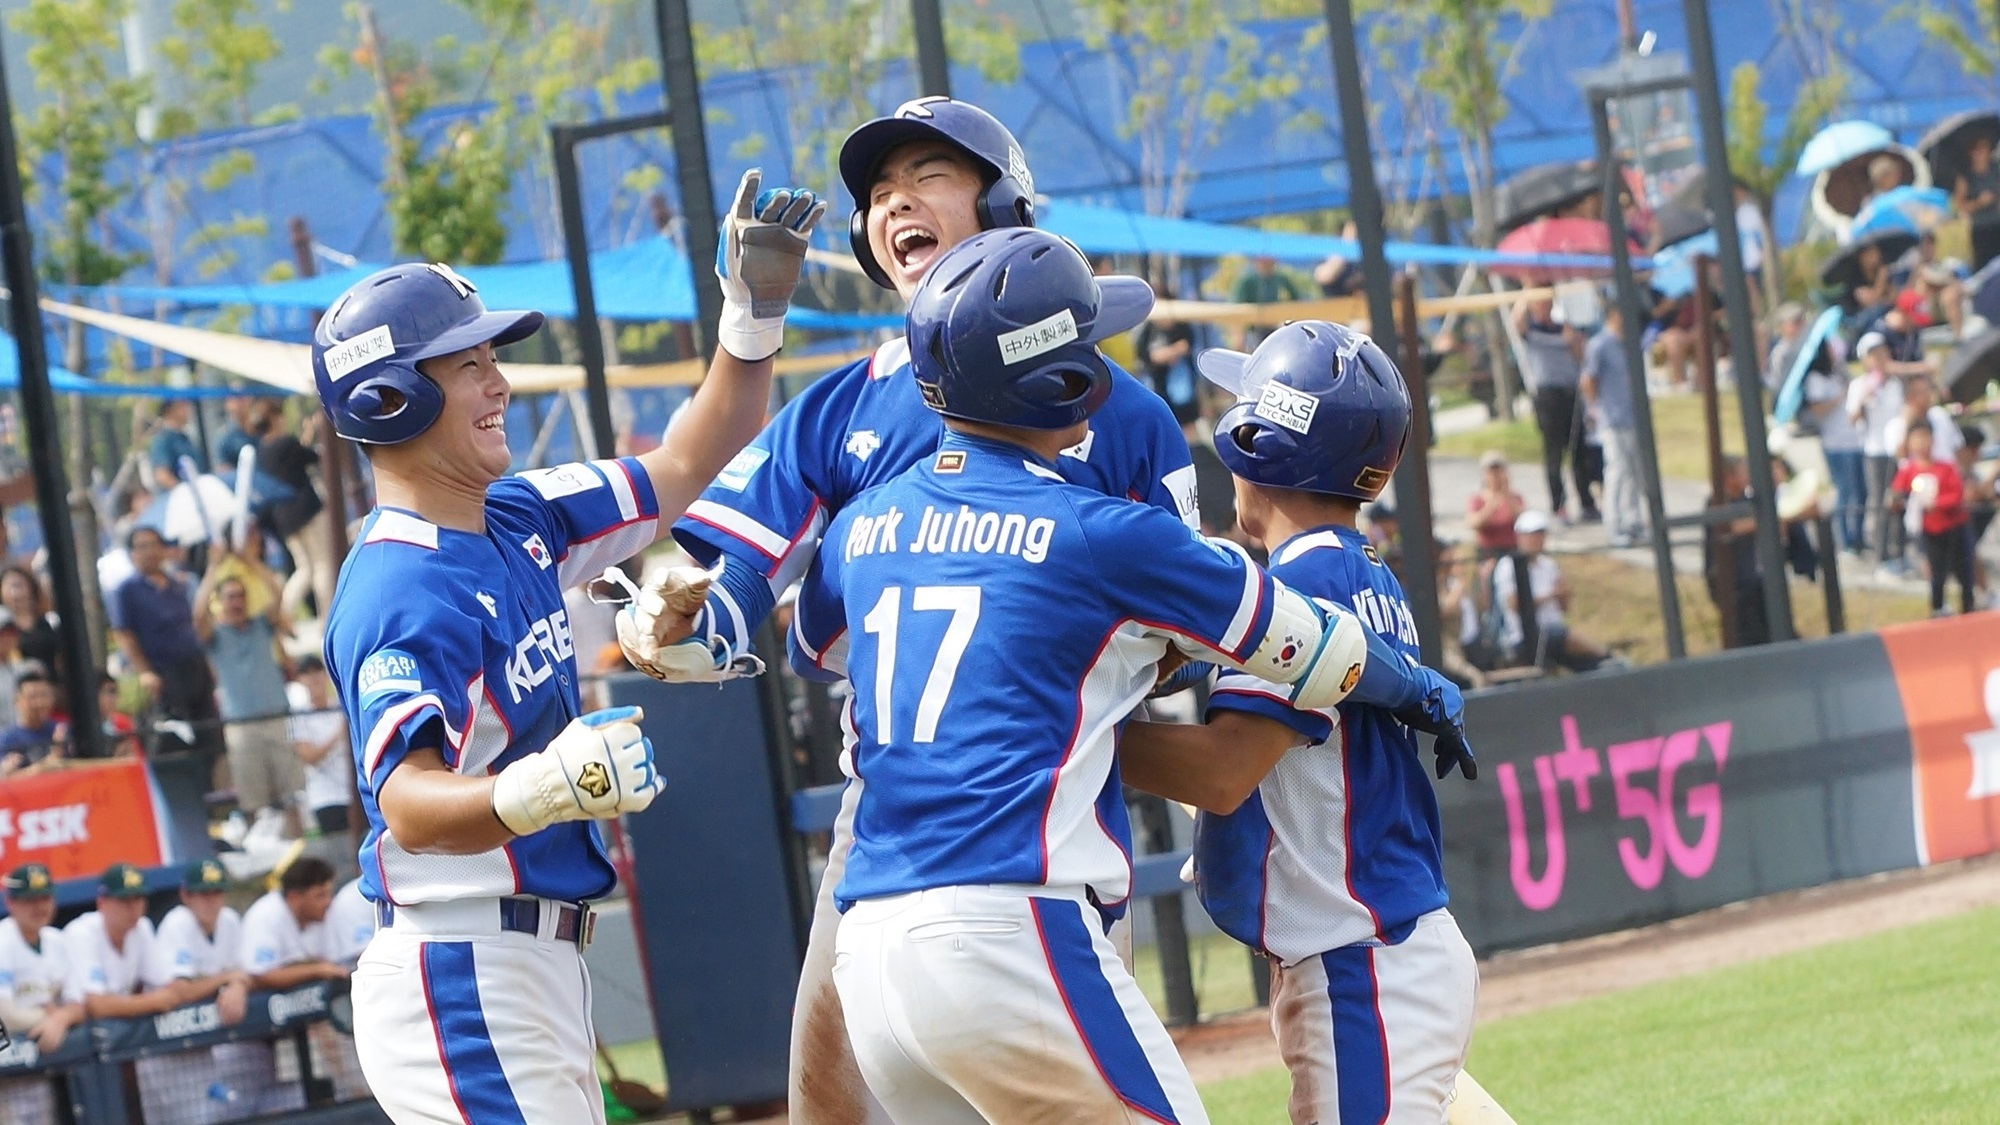 A two-run home run by Lee Juhyeong reversed the lead